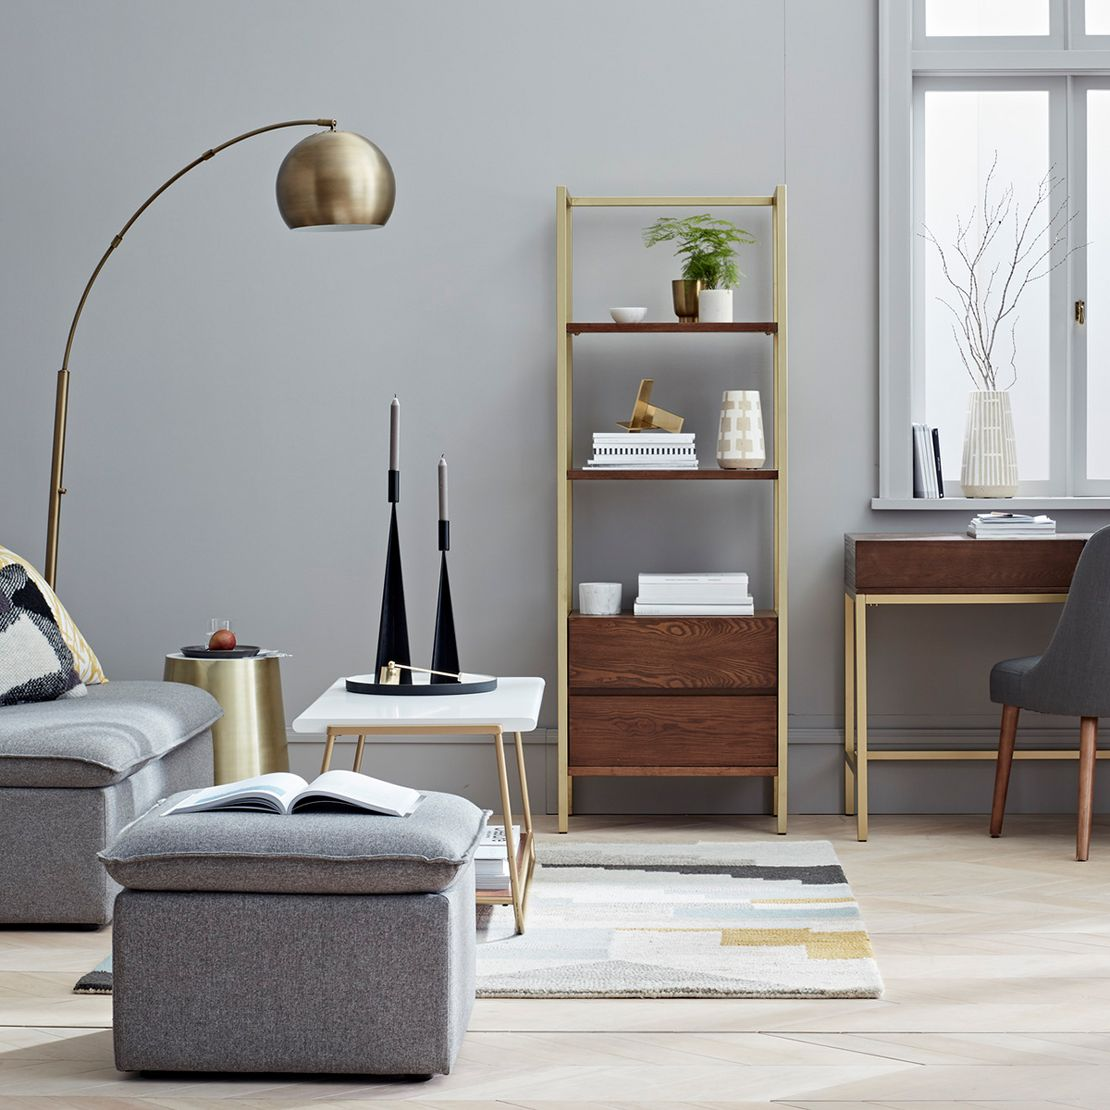 Home Decor Furniture Store: Home : Furnishings & Decor : Target